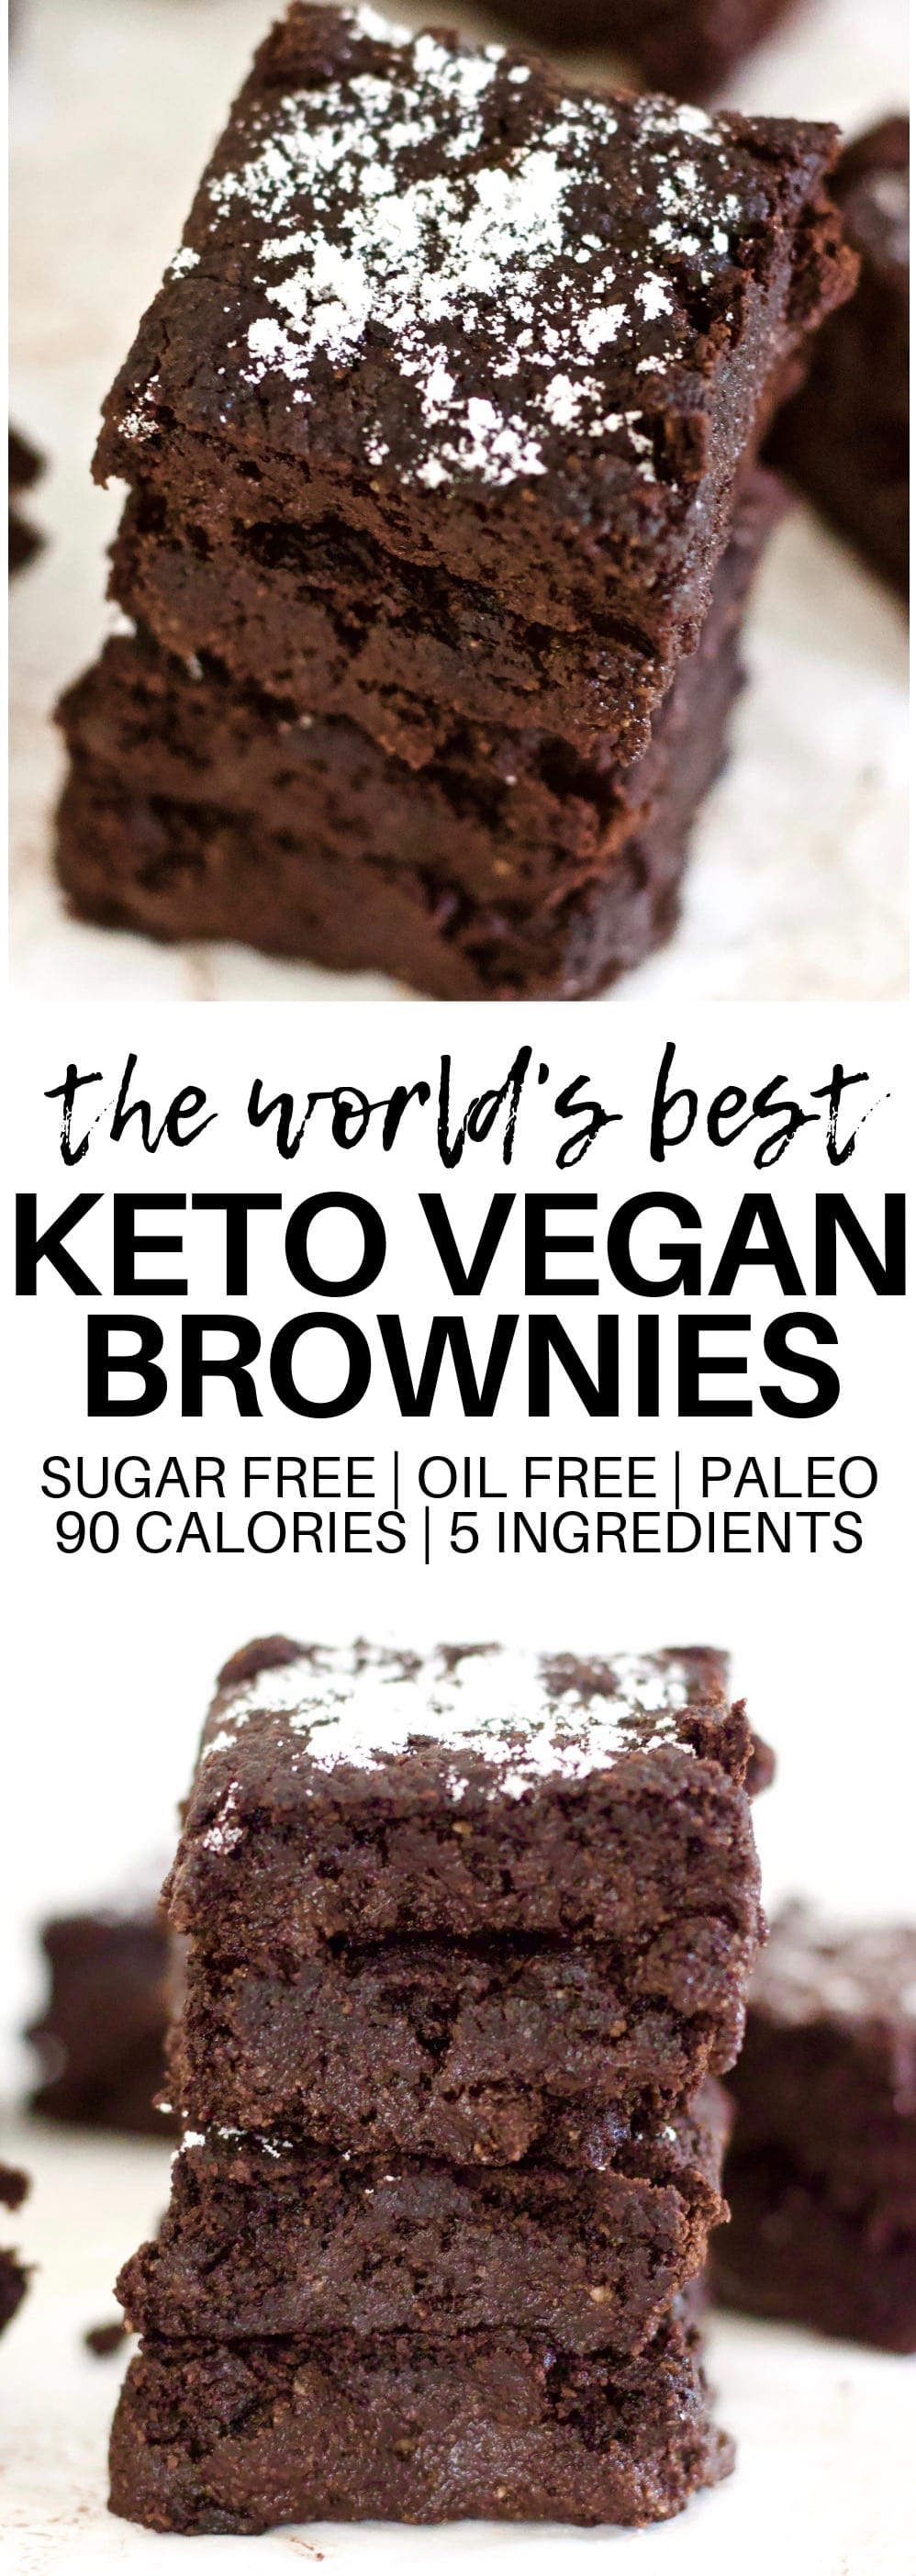 These AMAZING 5-Ingredient Keto Vegan Brownies are totally life-changing! They are ooey, gooey, and absolutely delicious. They're also sugar-free, oil-free, paleo, dairy-free and low-calorie - only 90 calories each!